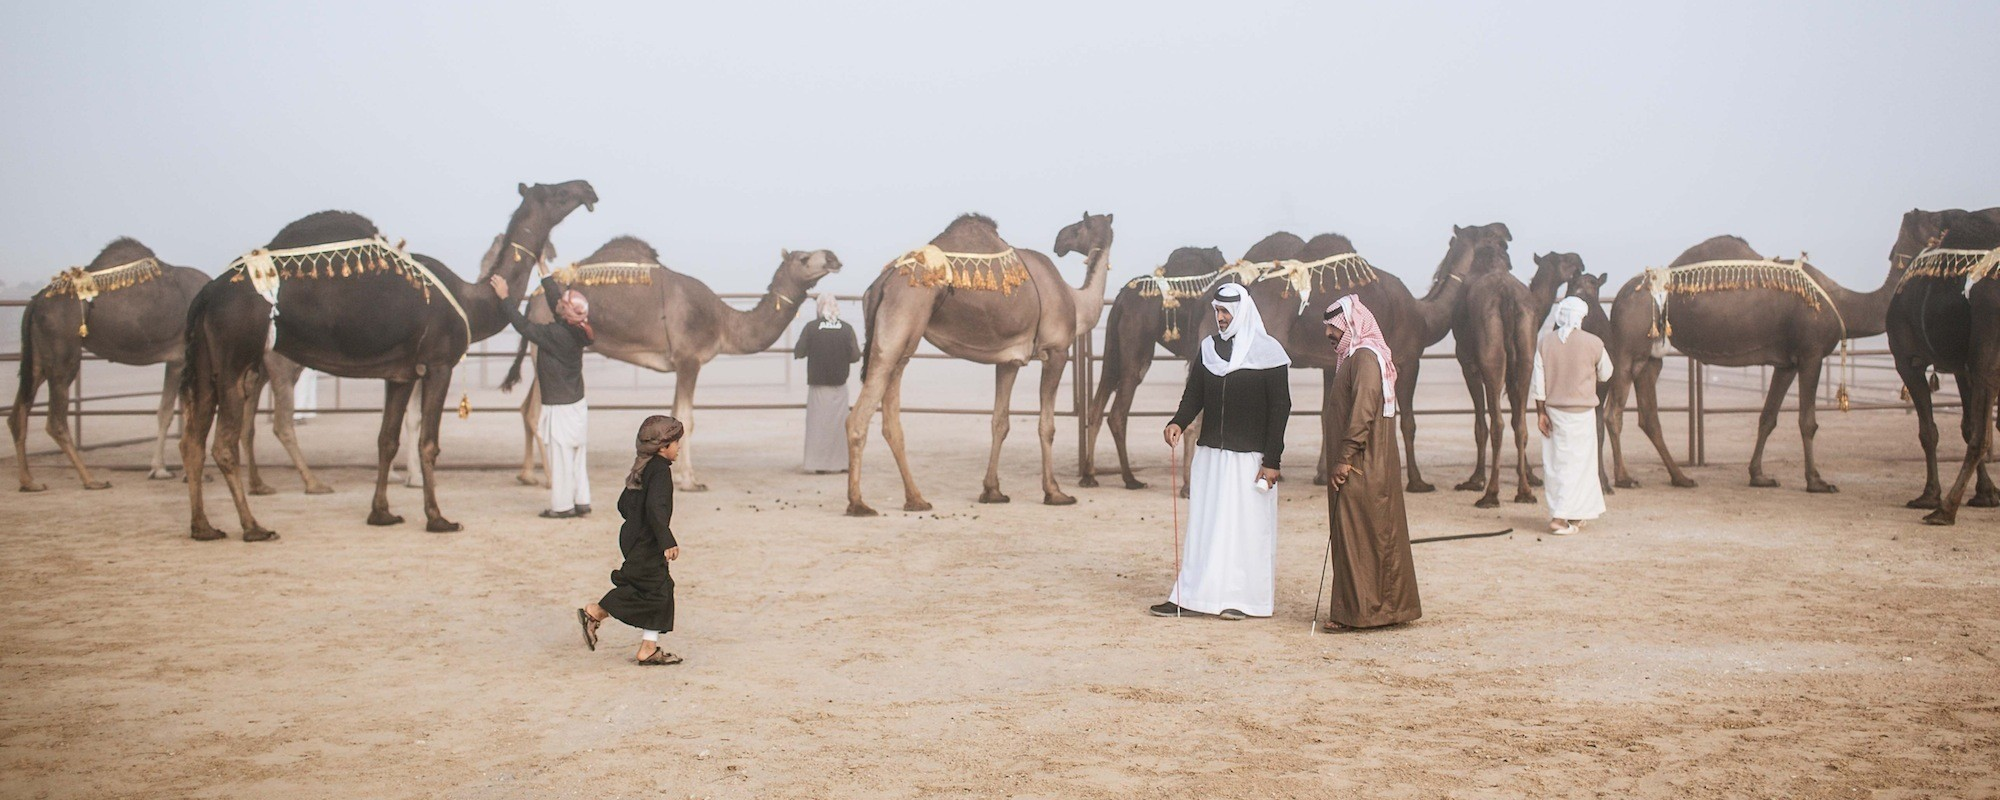 Photos from the 2015 Miss Camel Beauty Contest